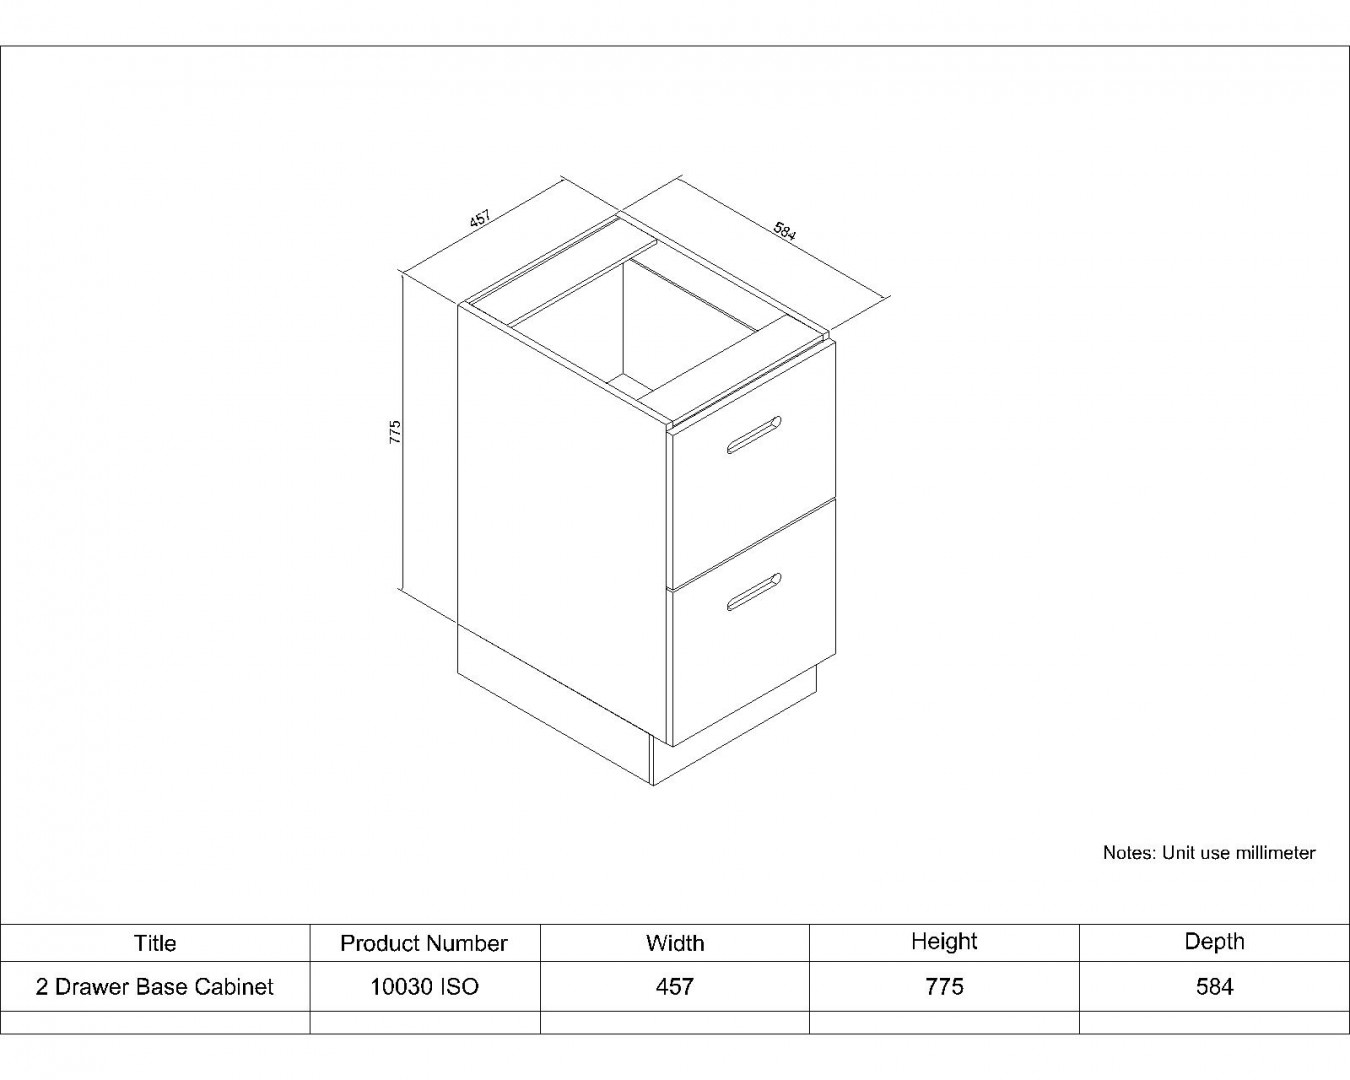 2 Drawer Base Cabinet 457